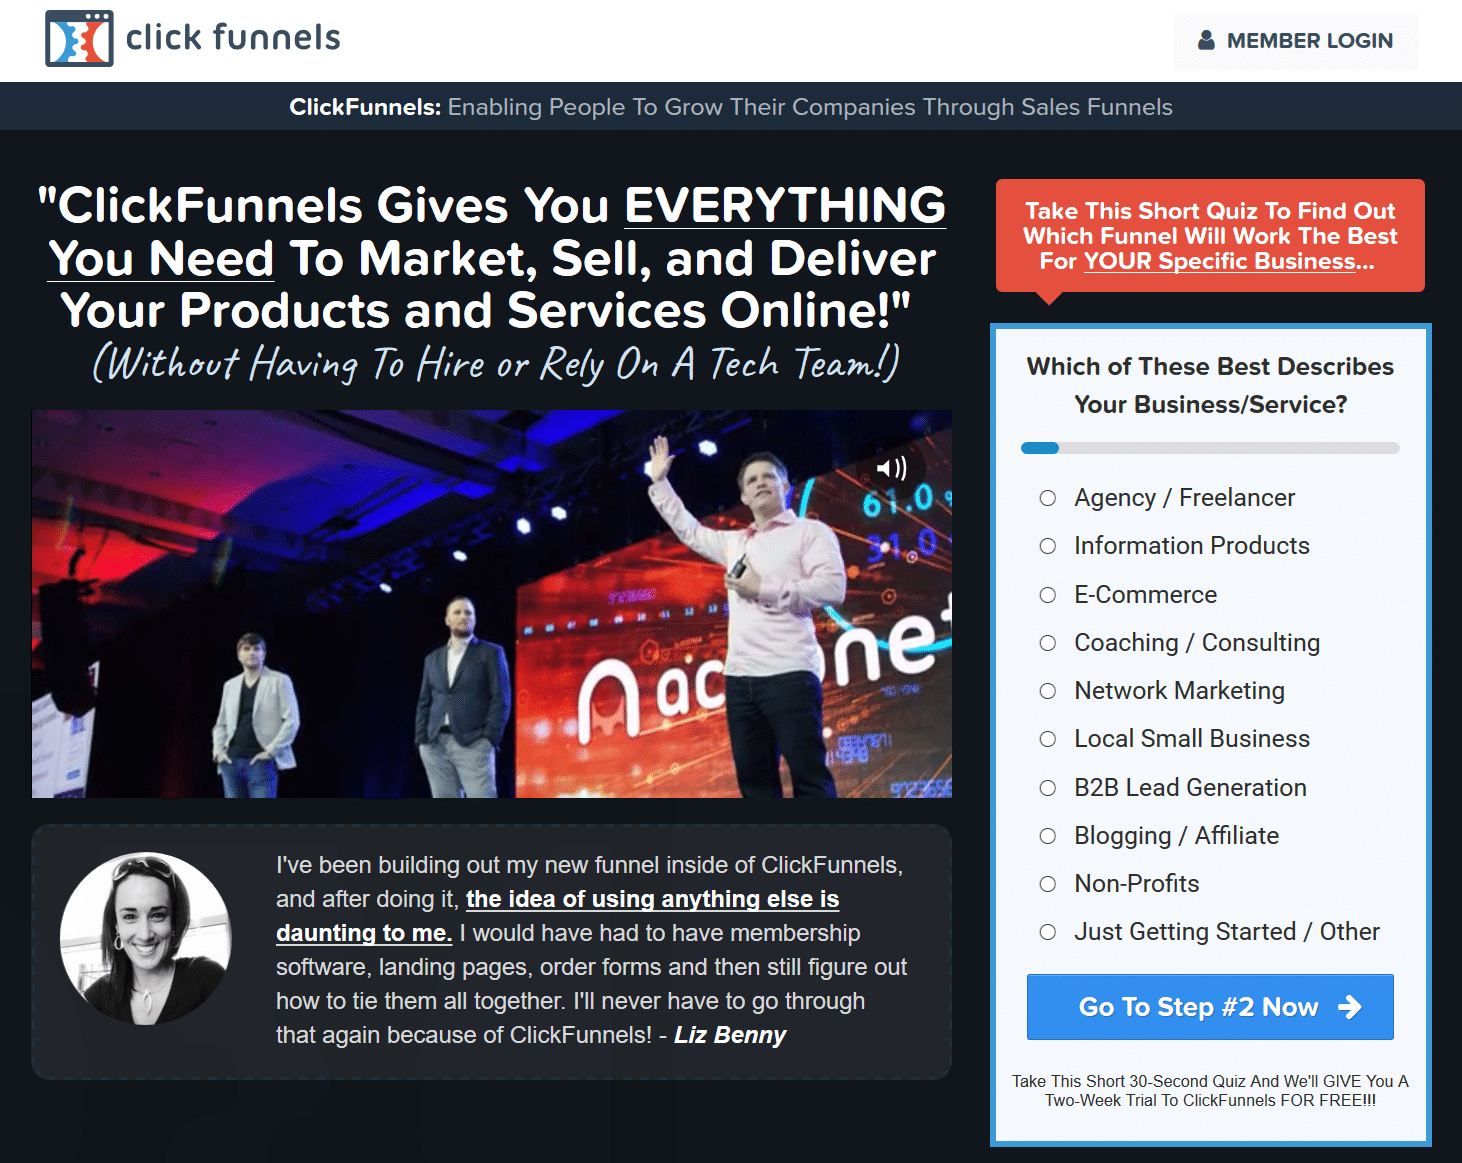 How To Get Certified On Clickfunnels